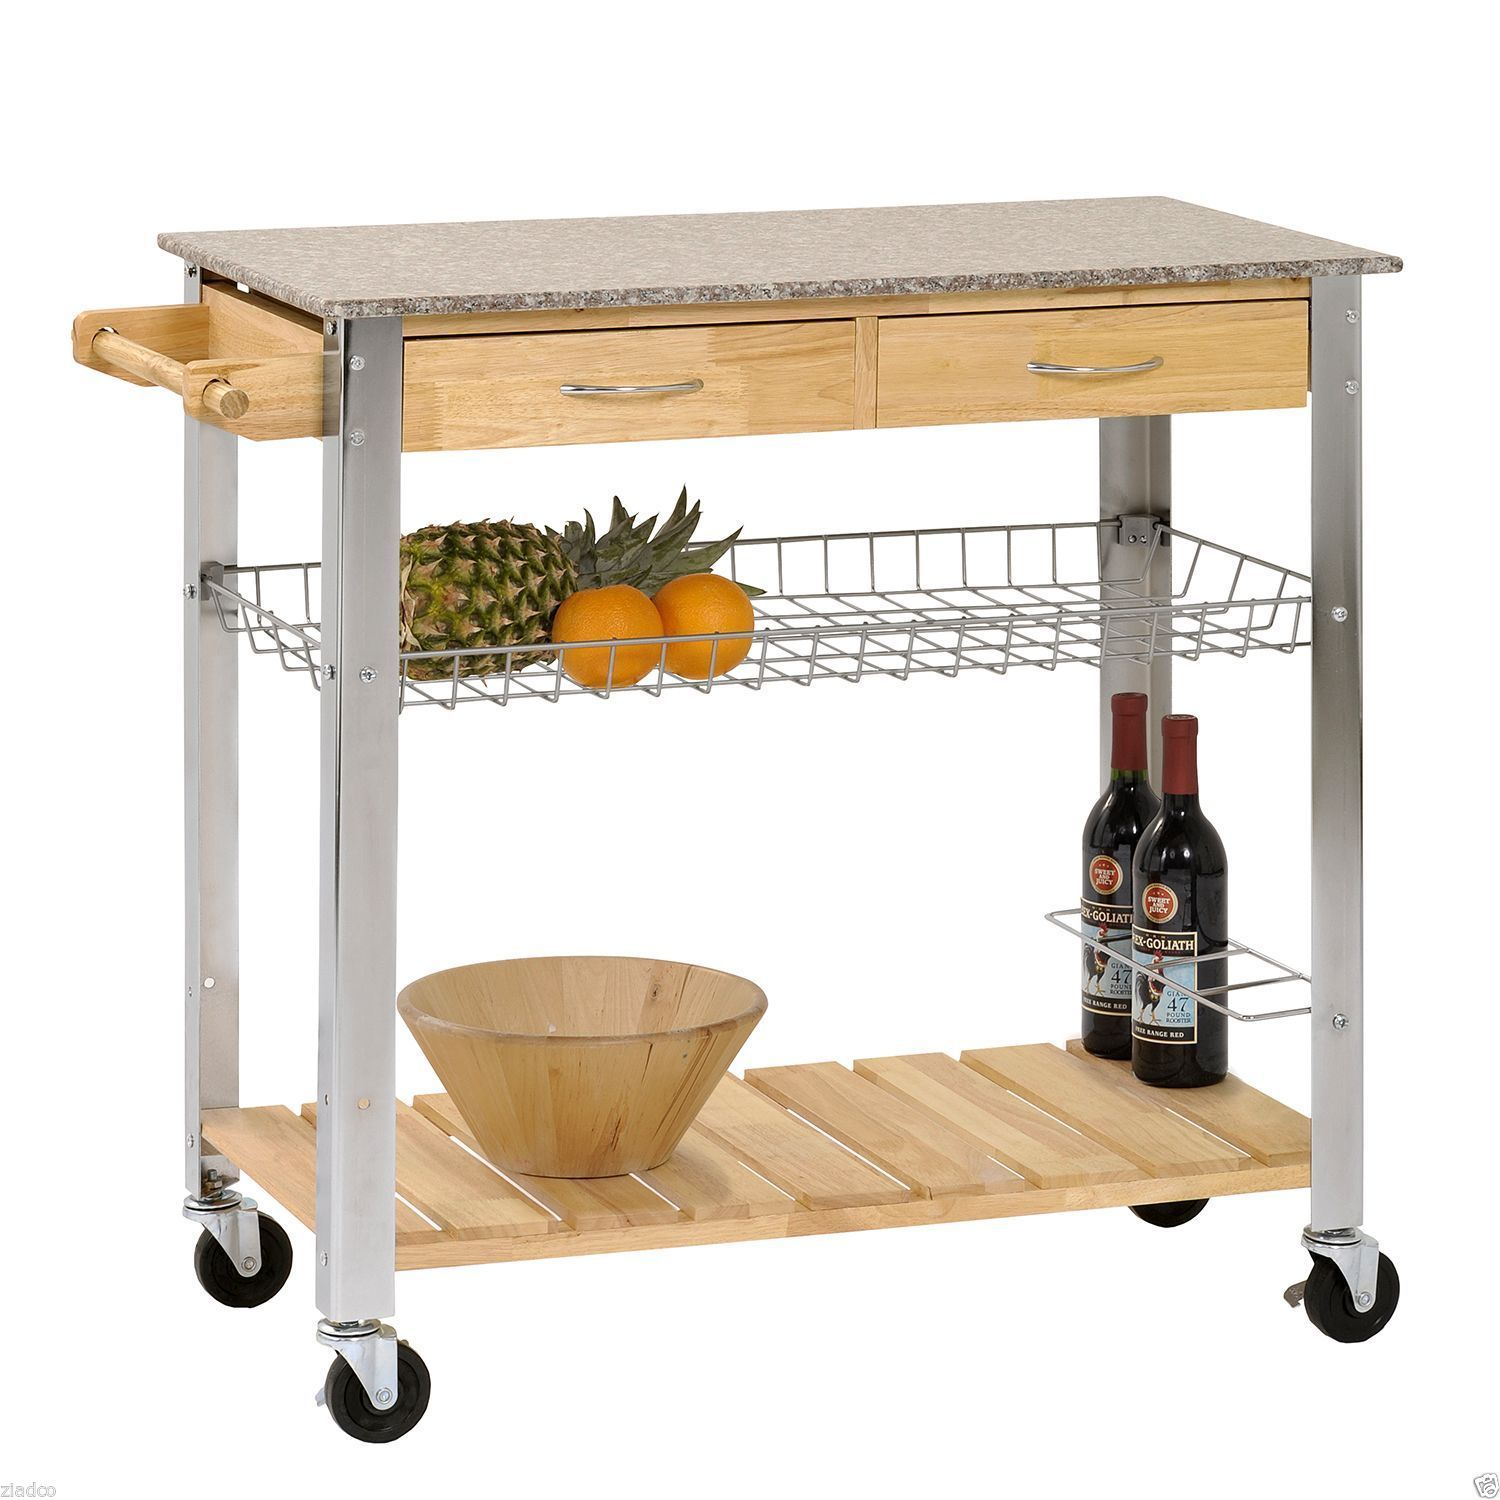 New Kitchen Trolley Rolling Cart Wood Steel Legs 2 Storage Drawer Marble Top Ebay